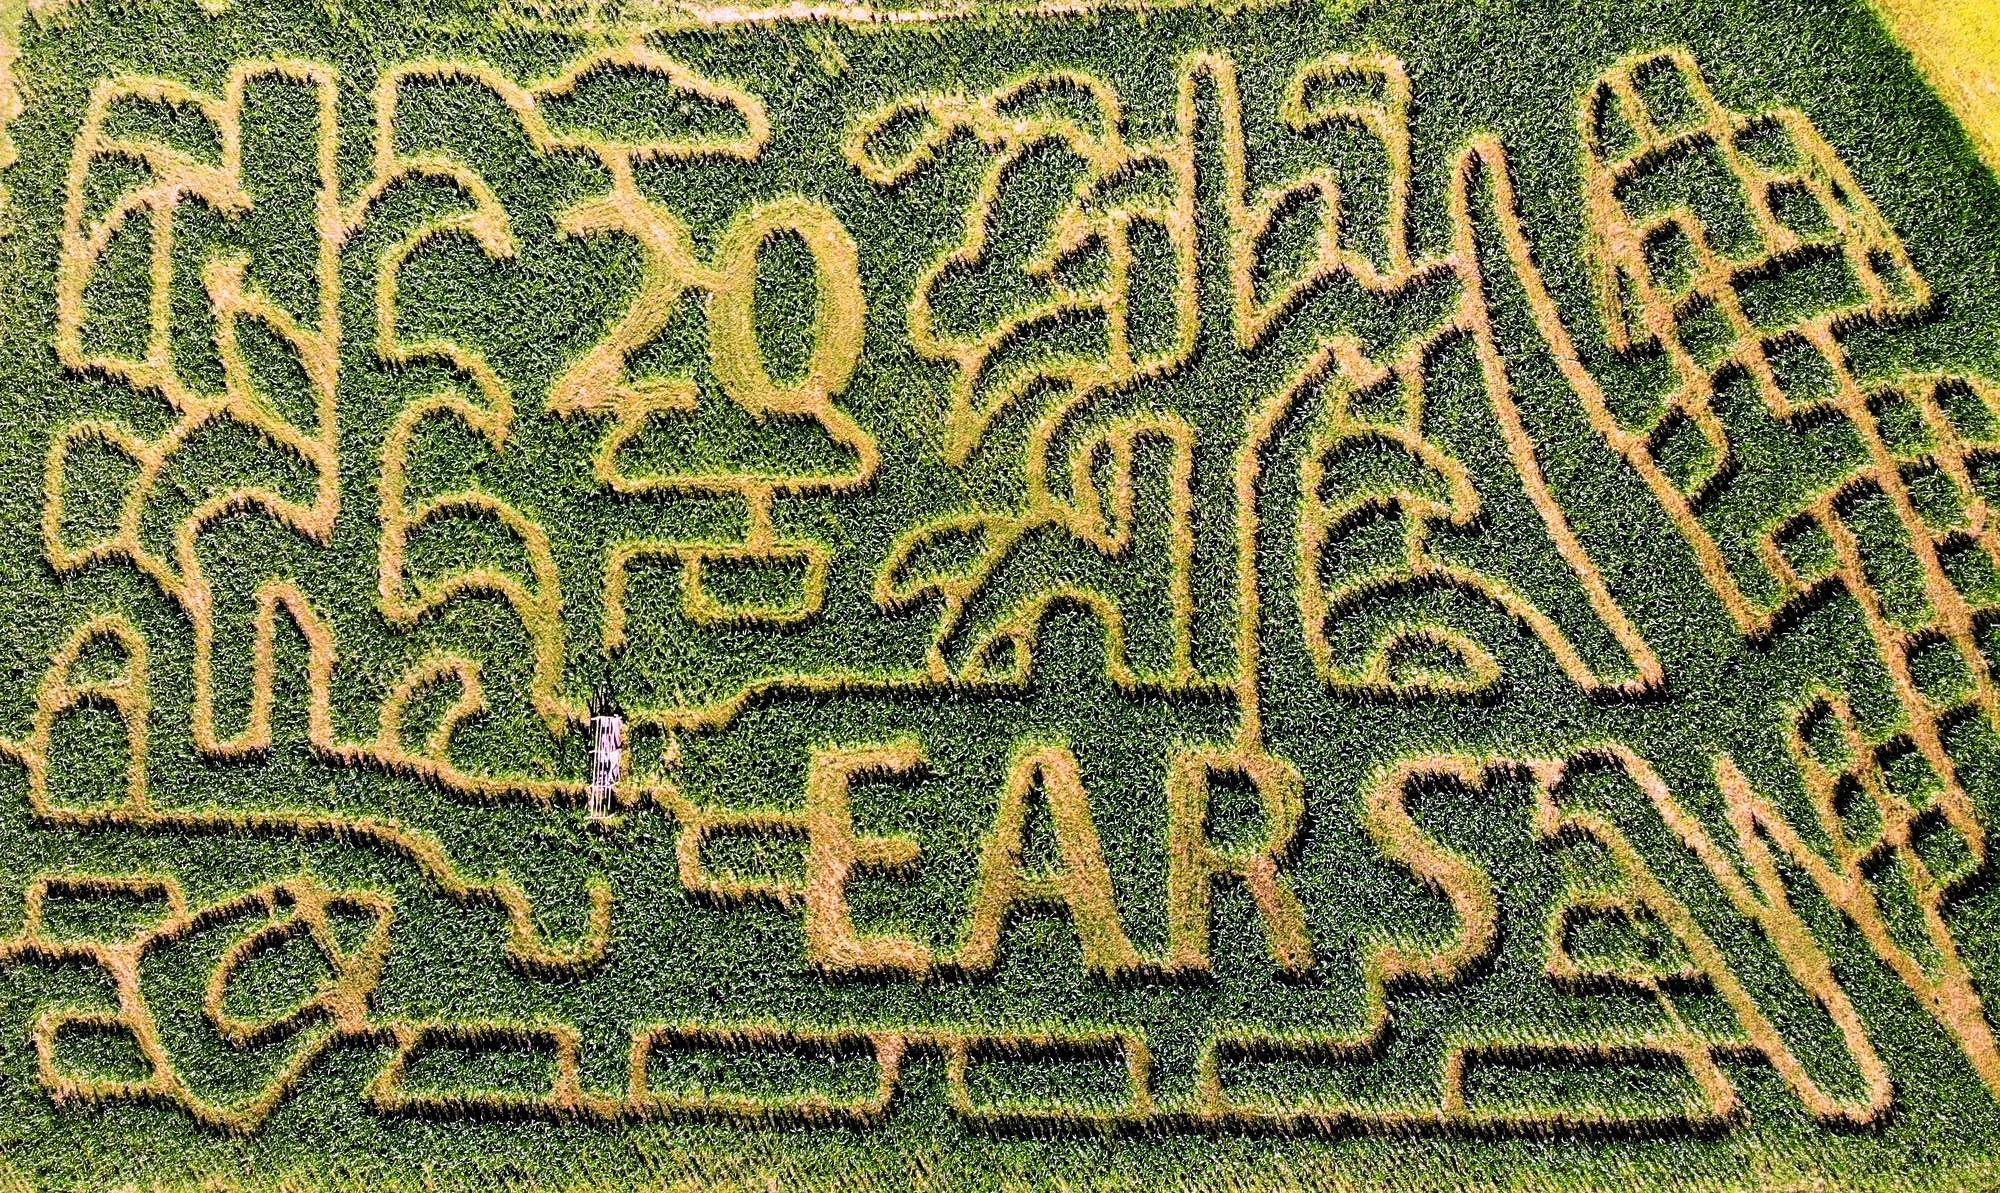 The Corn Maze in the Plains Virginia